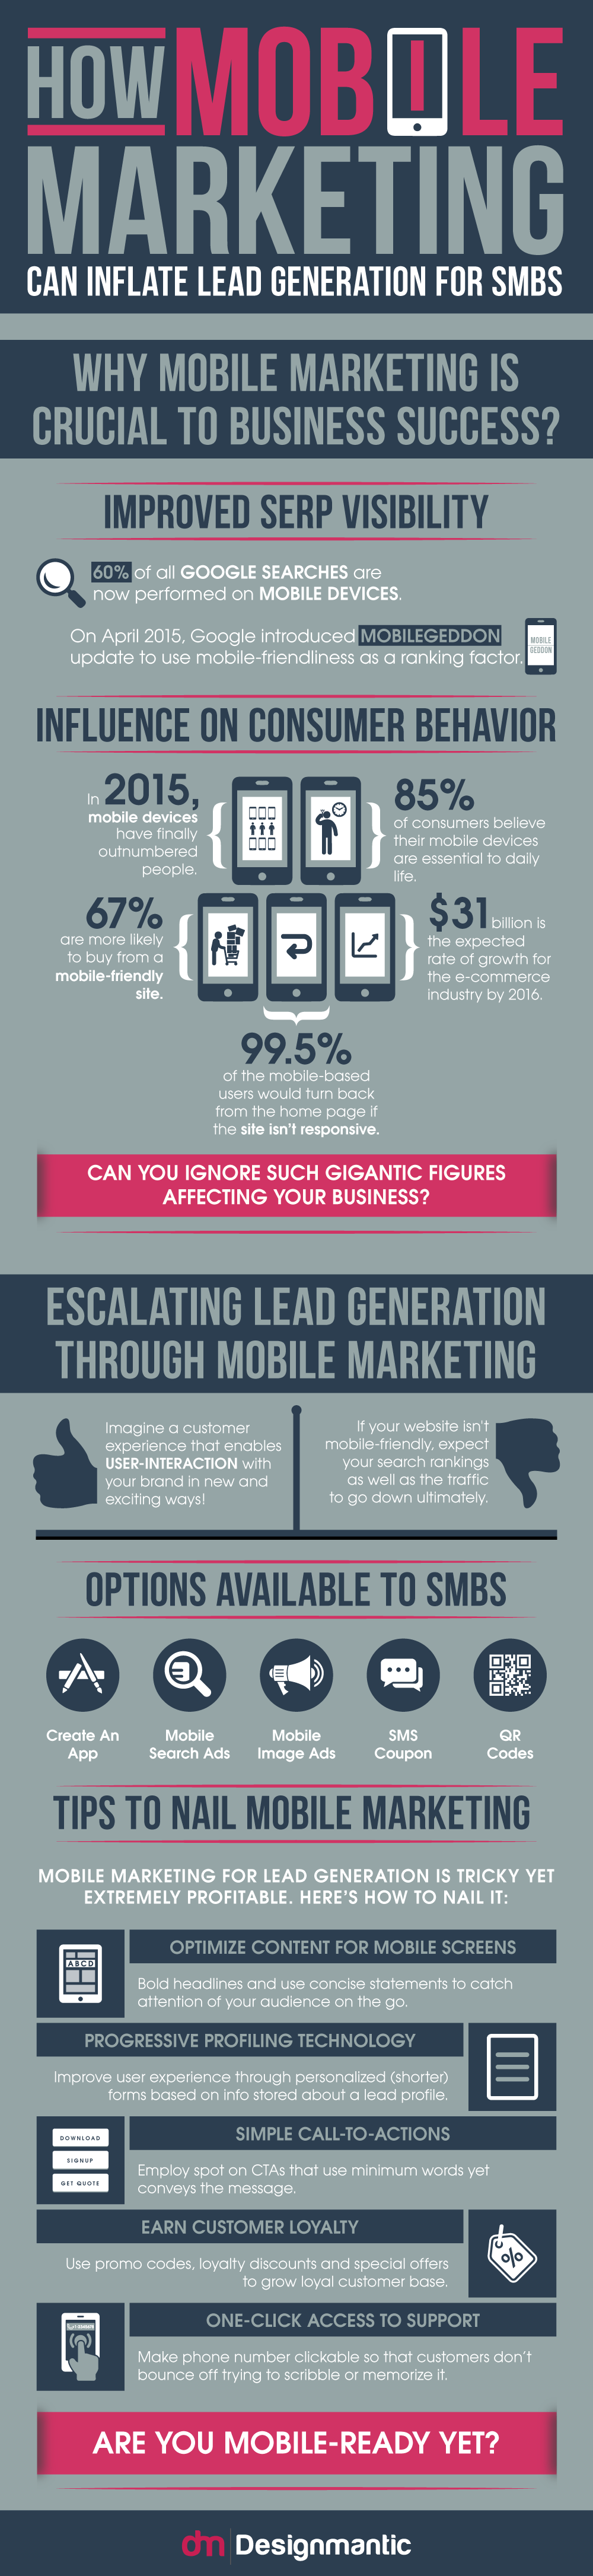 How Mobile Marketing Can Inflate Lead Generation for SMBs